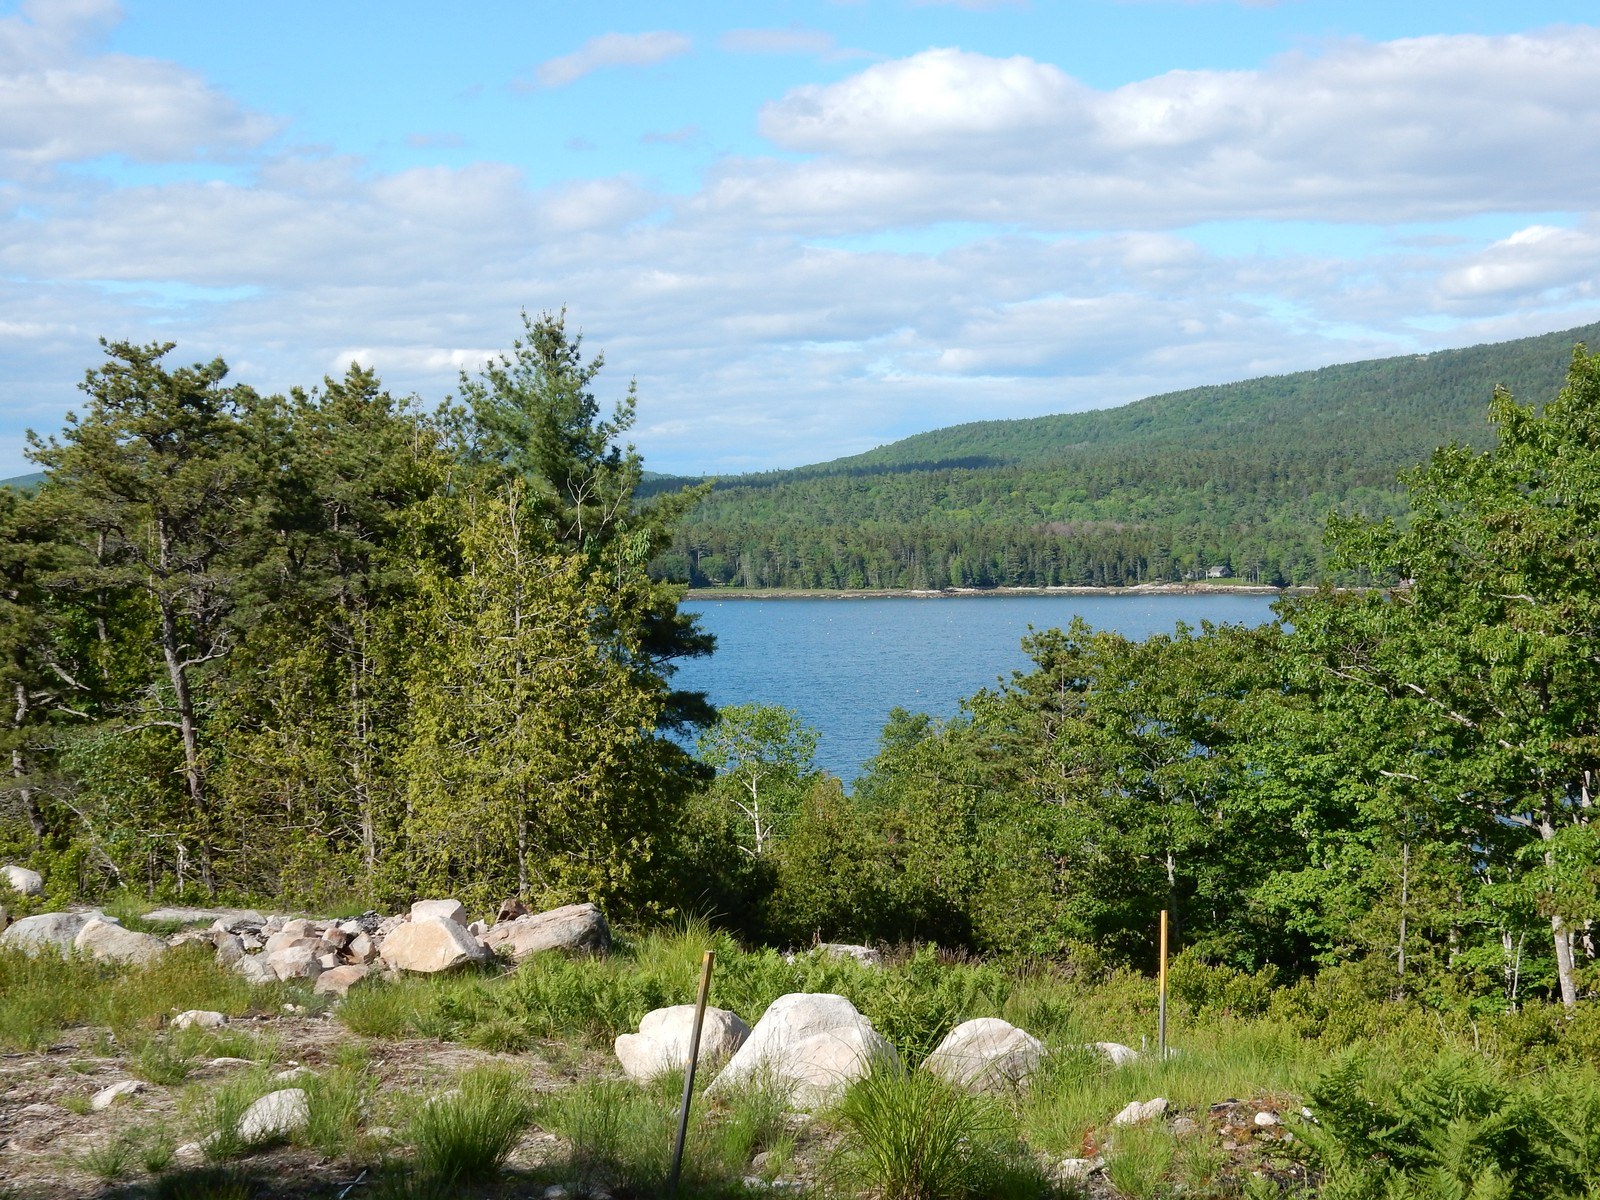 Terreno por un Venta en Sound View Estates Lot 3 Lot 3 Sound View Estates Mount Desert, Maine, 04660 Estados Unidos